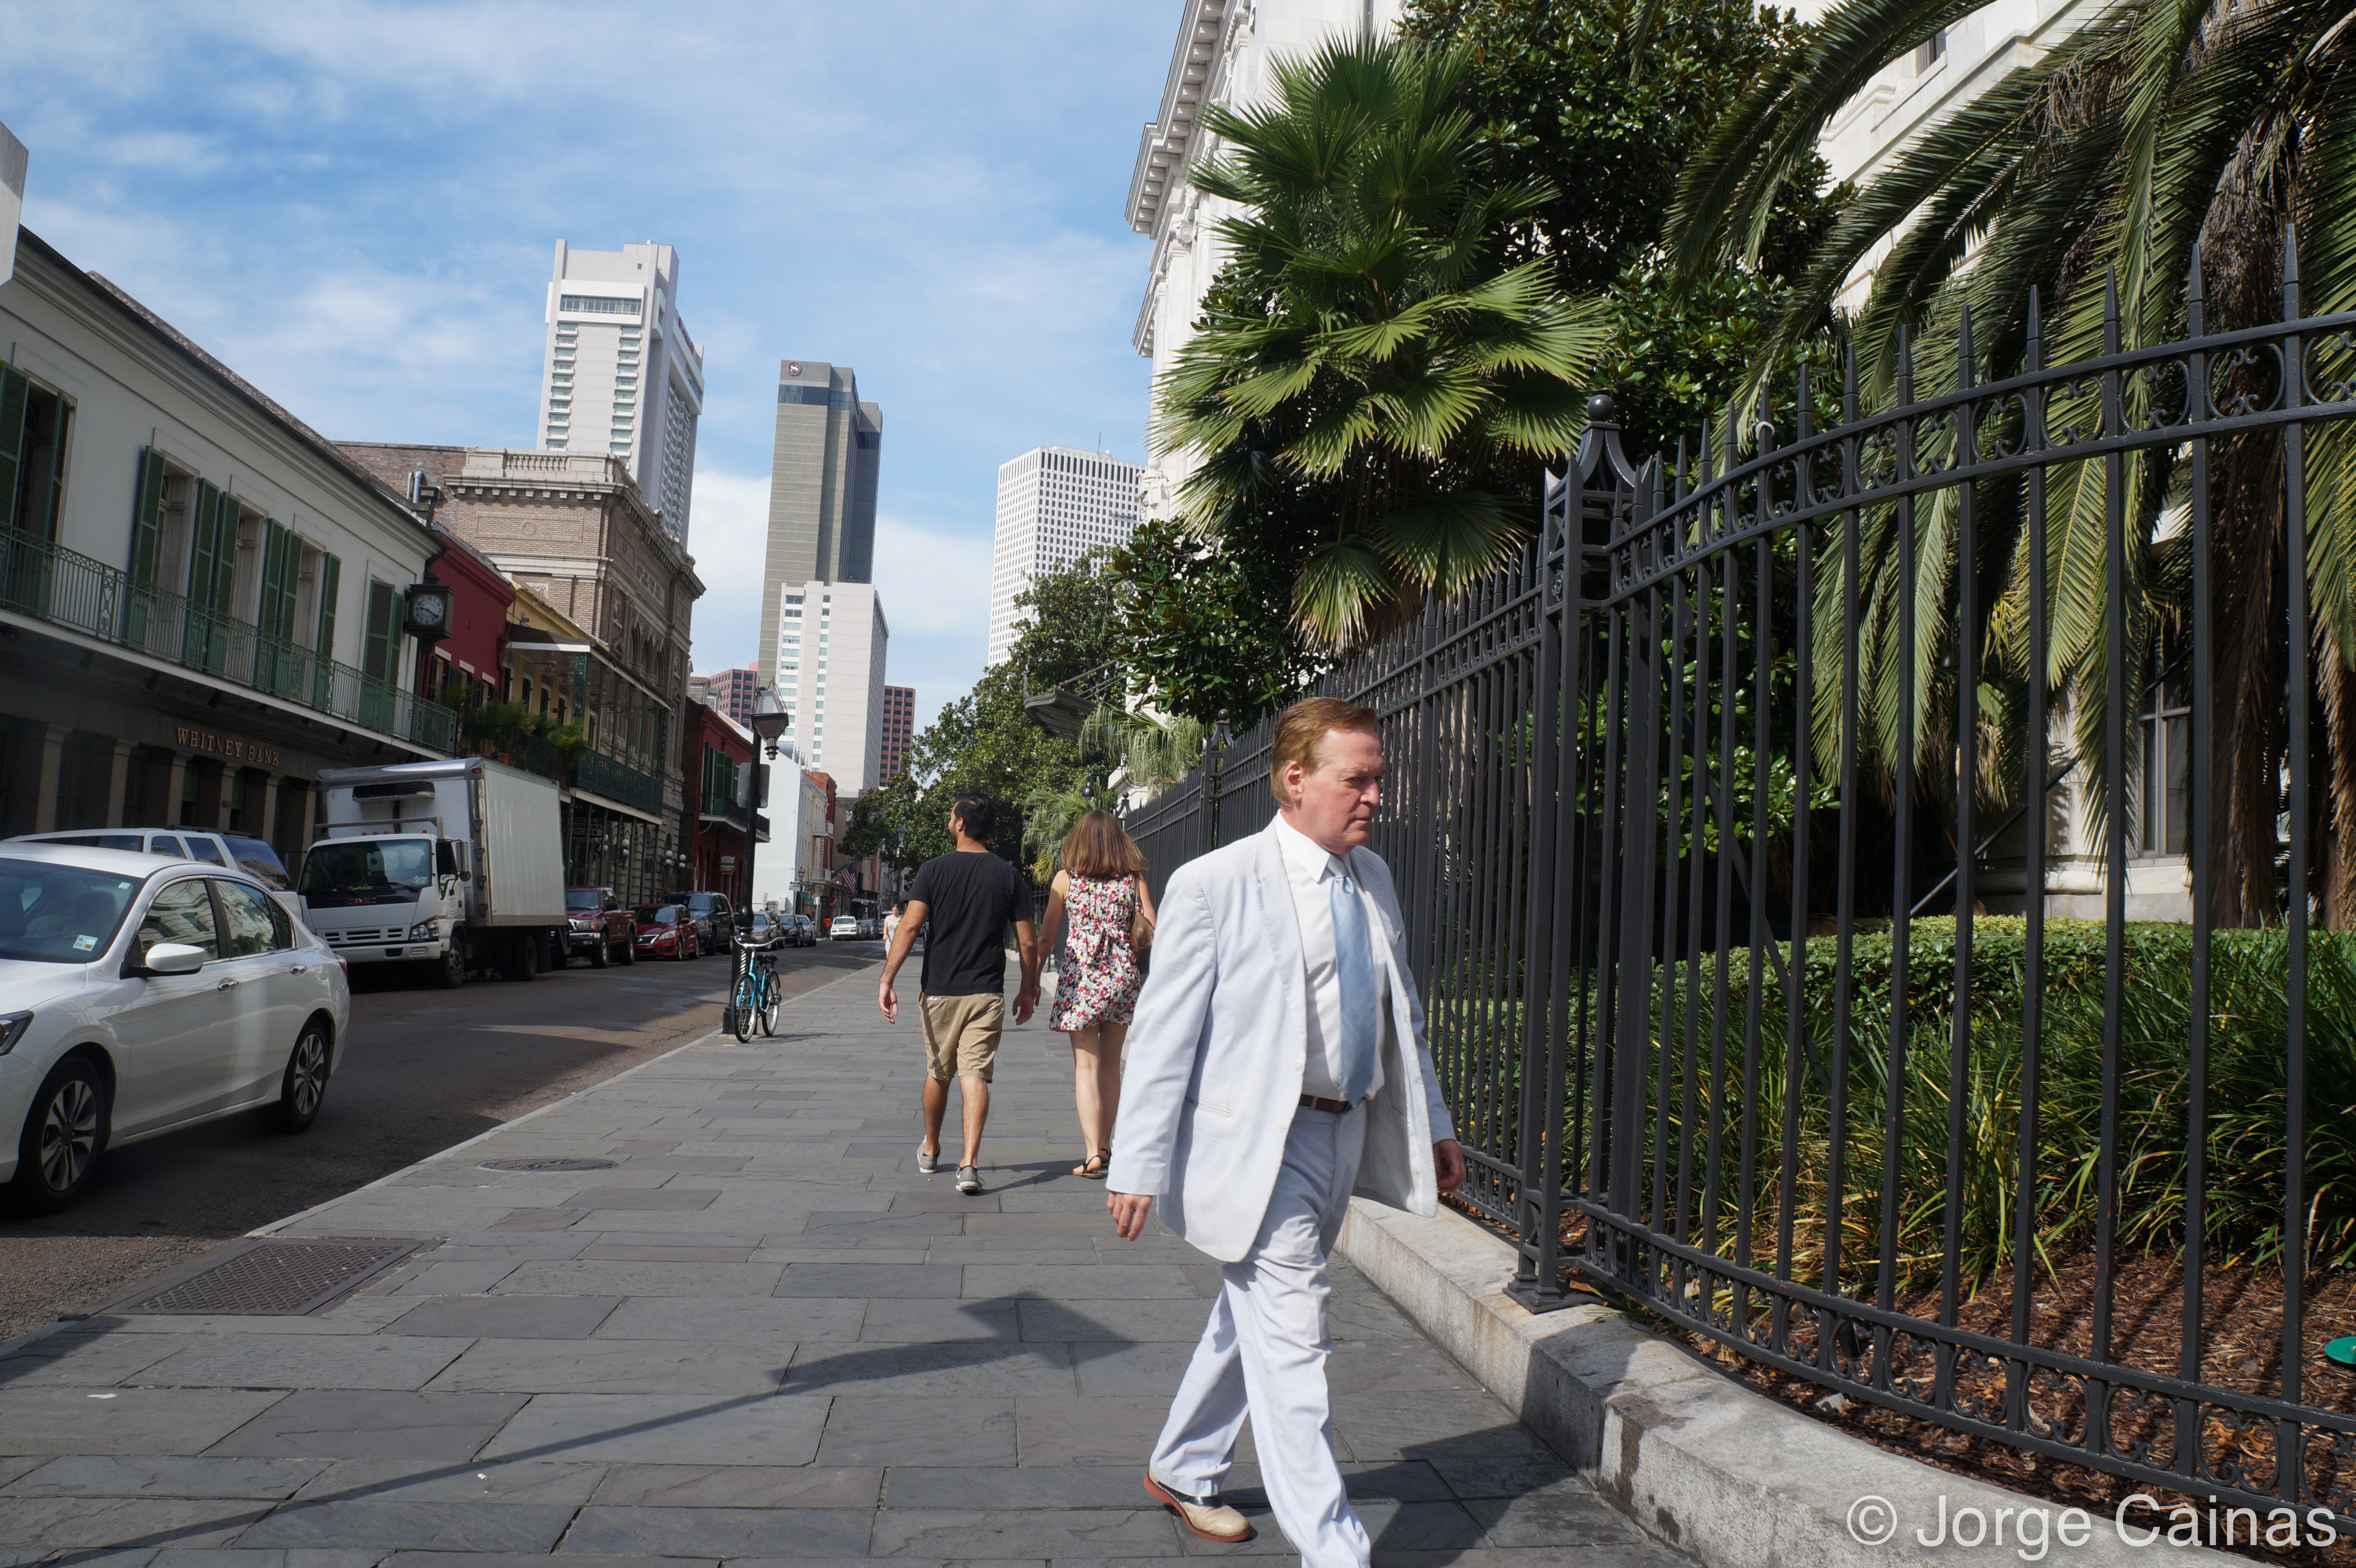 The New Orleans Man